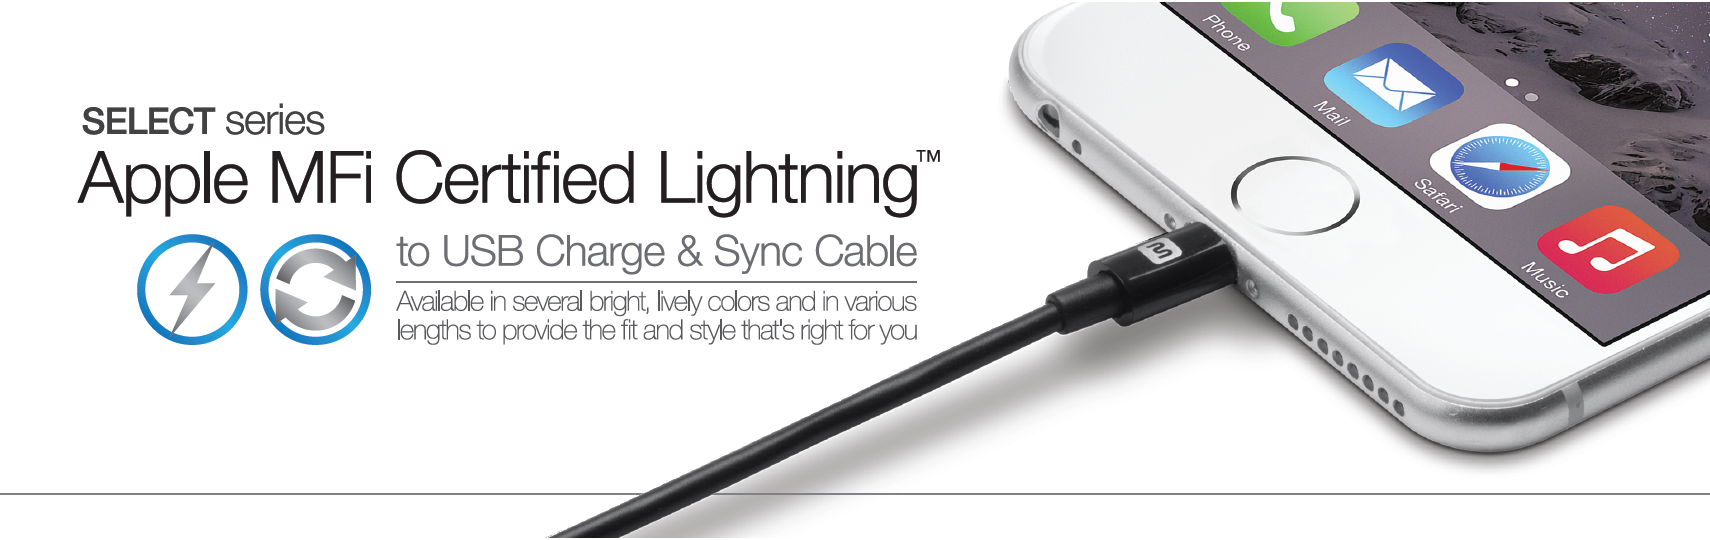 Select Series Apple MFi Certified Lightning to USB Charge & Sync Cable 3ft Black, LIGHT-12843